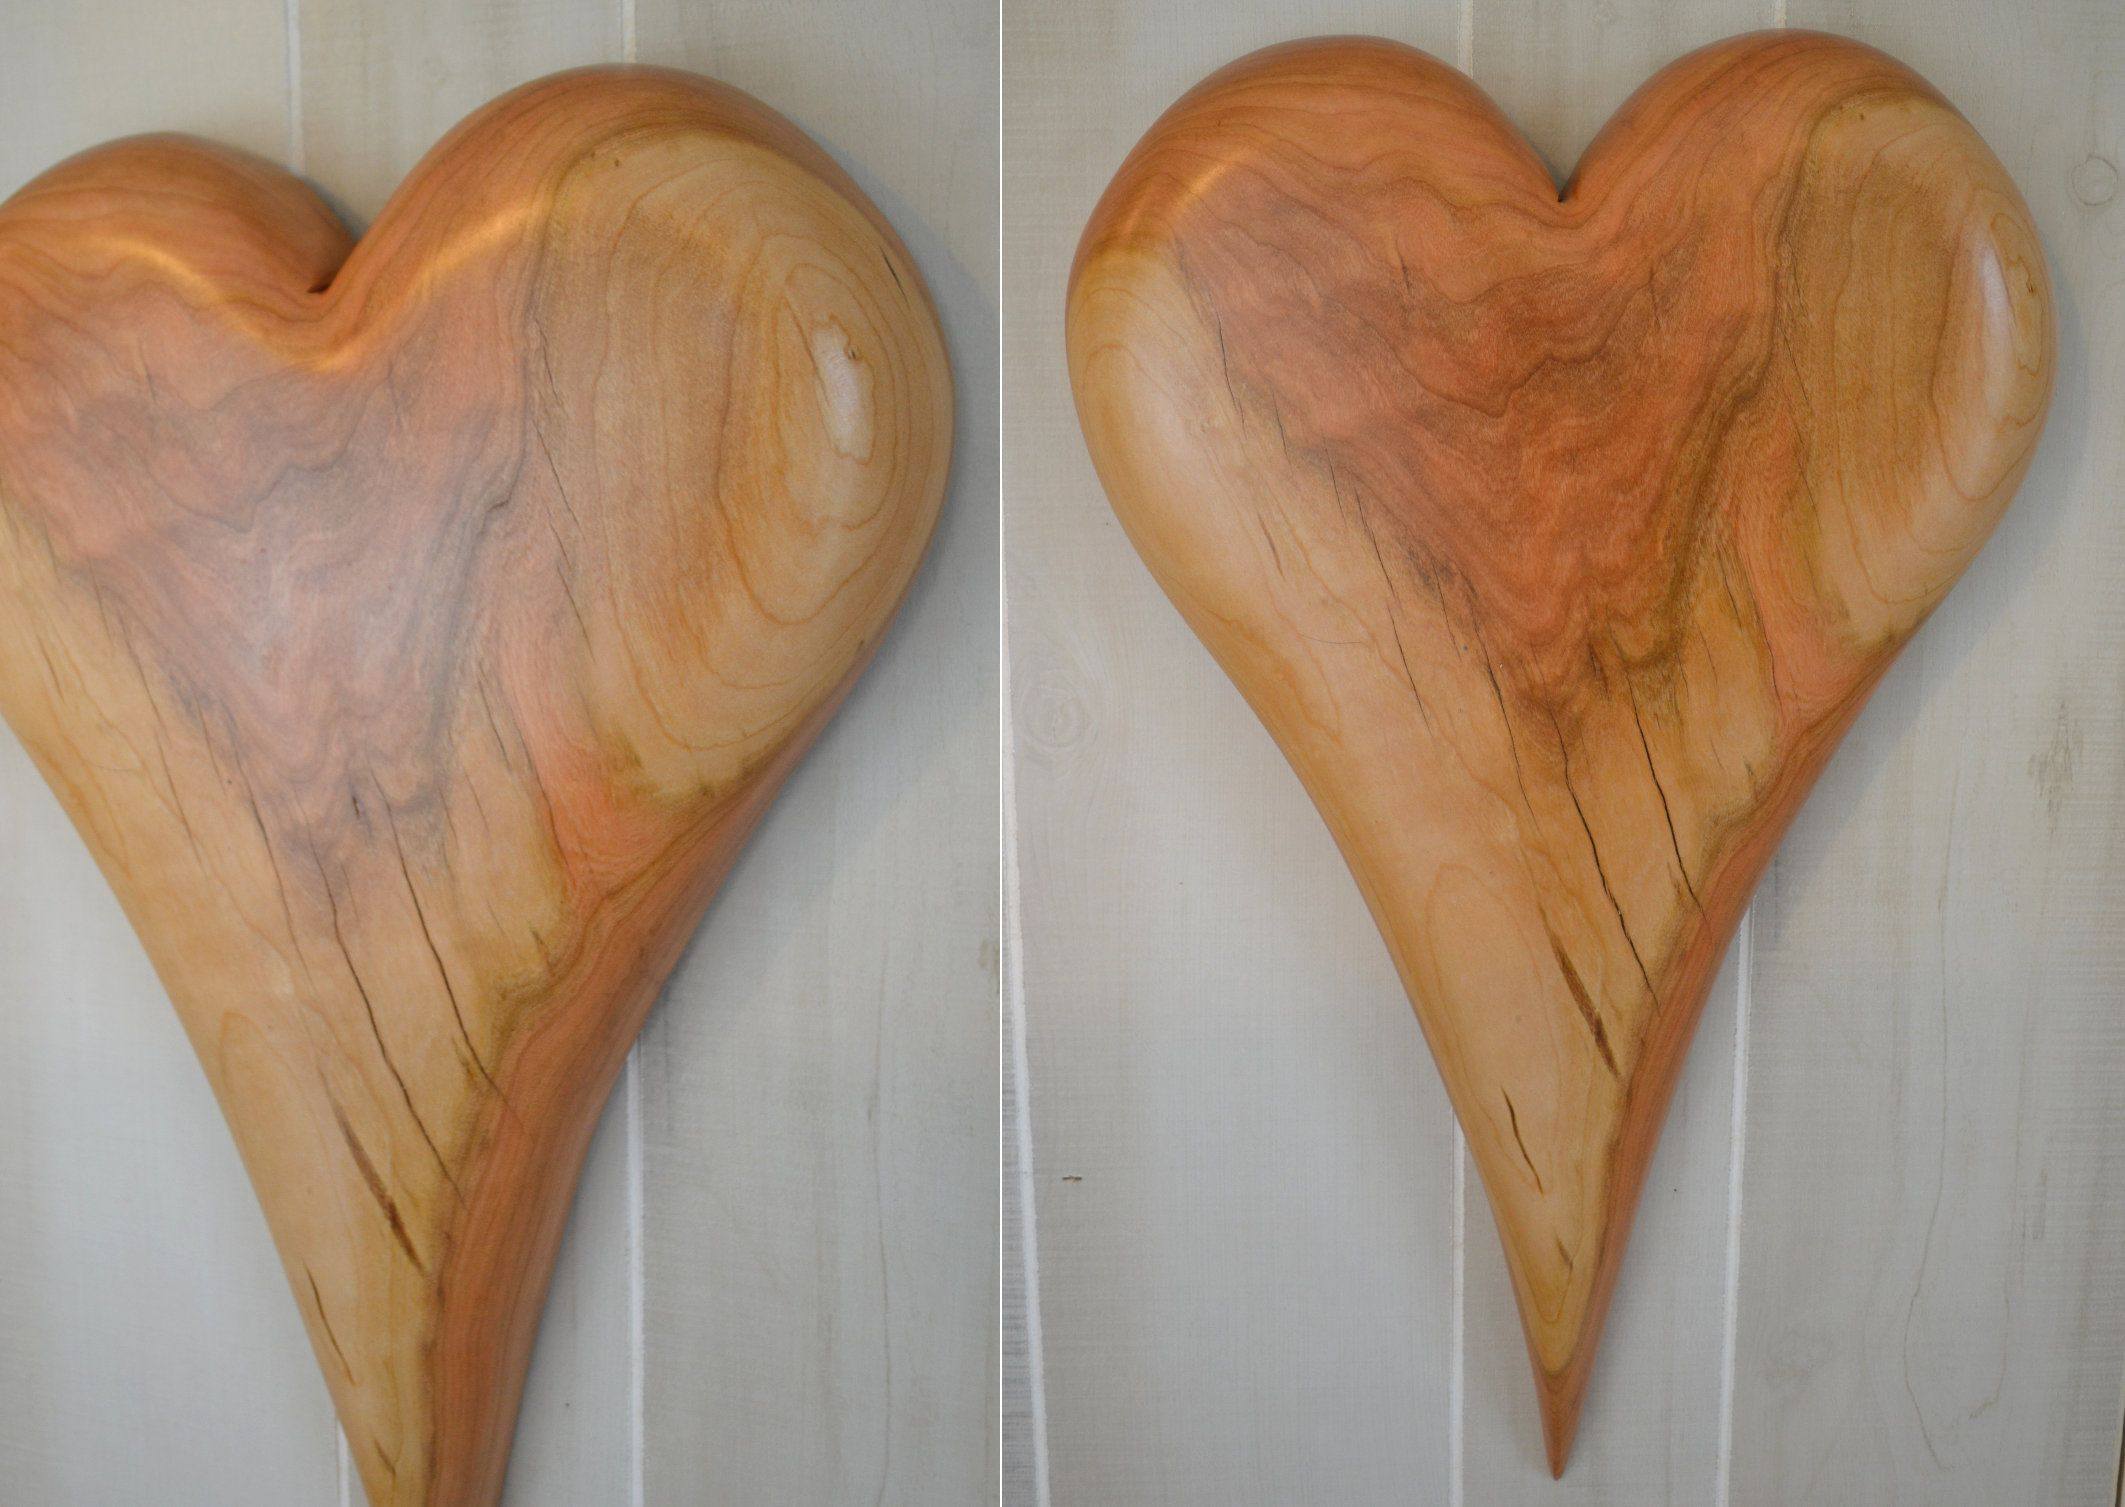 Wood Heart Decor Wall Hanging Wood Heart Carving Anniversary Wedding Valentine S Day Gift By Creation Carvings In 2020 With Images Wood Hearts Heart Decorations Heart Wall Decor